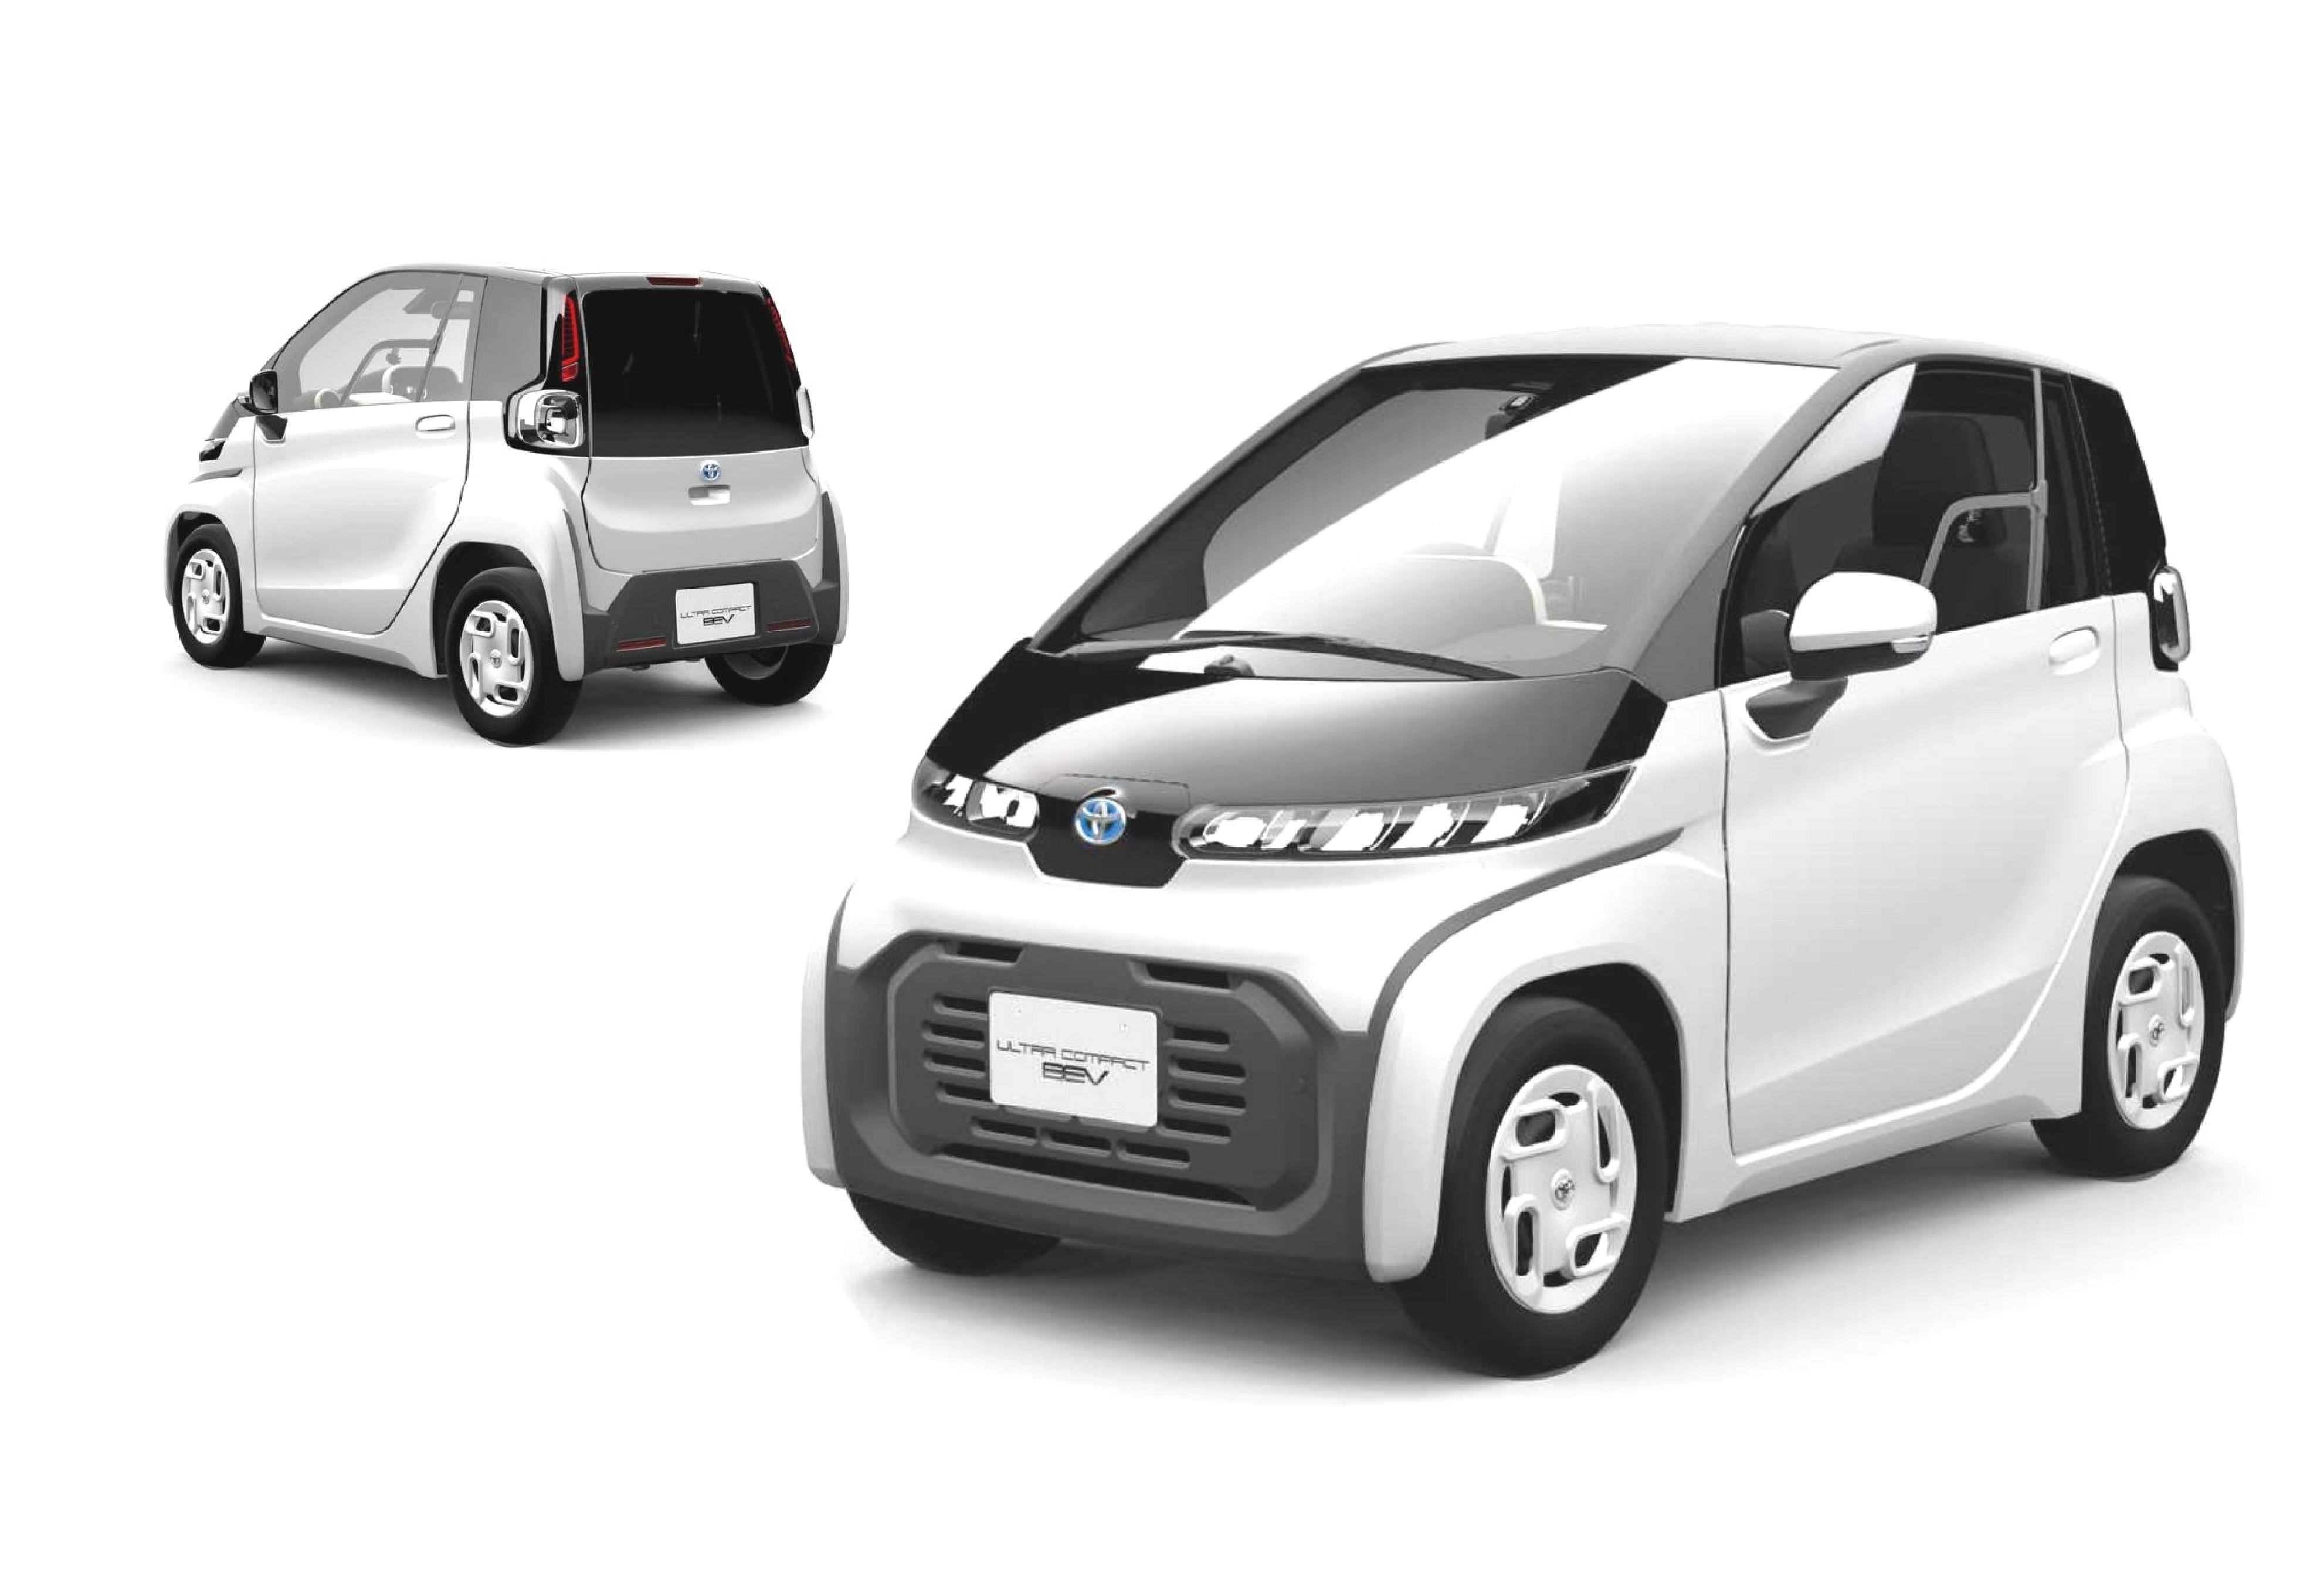 Toyota-Suzuki to launch a Compact Electric Car in India by ...